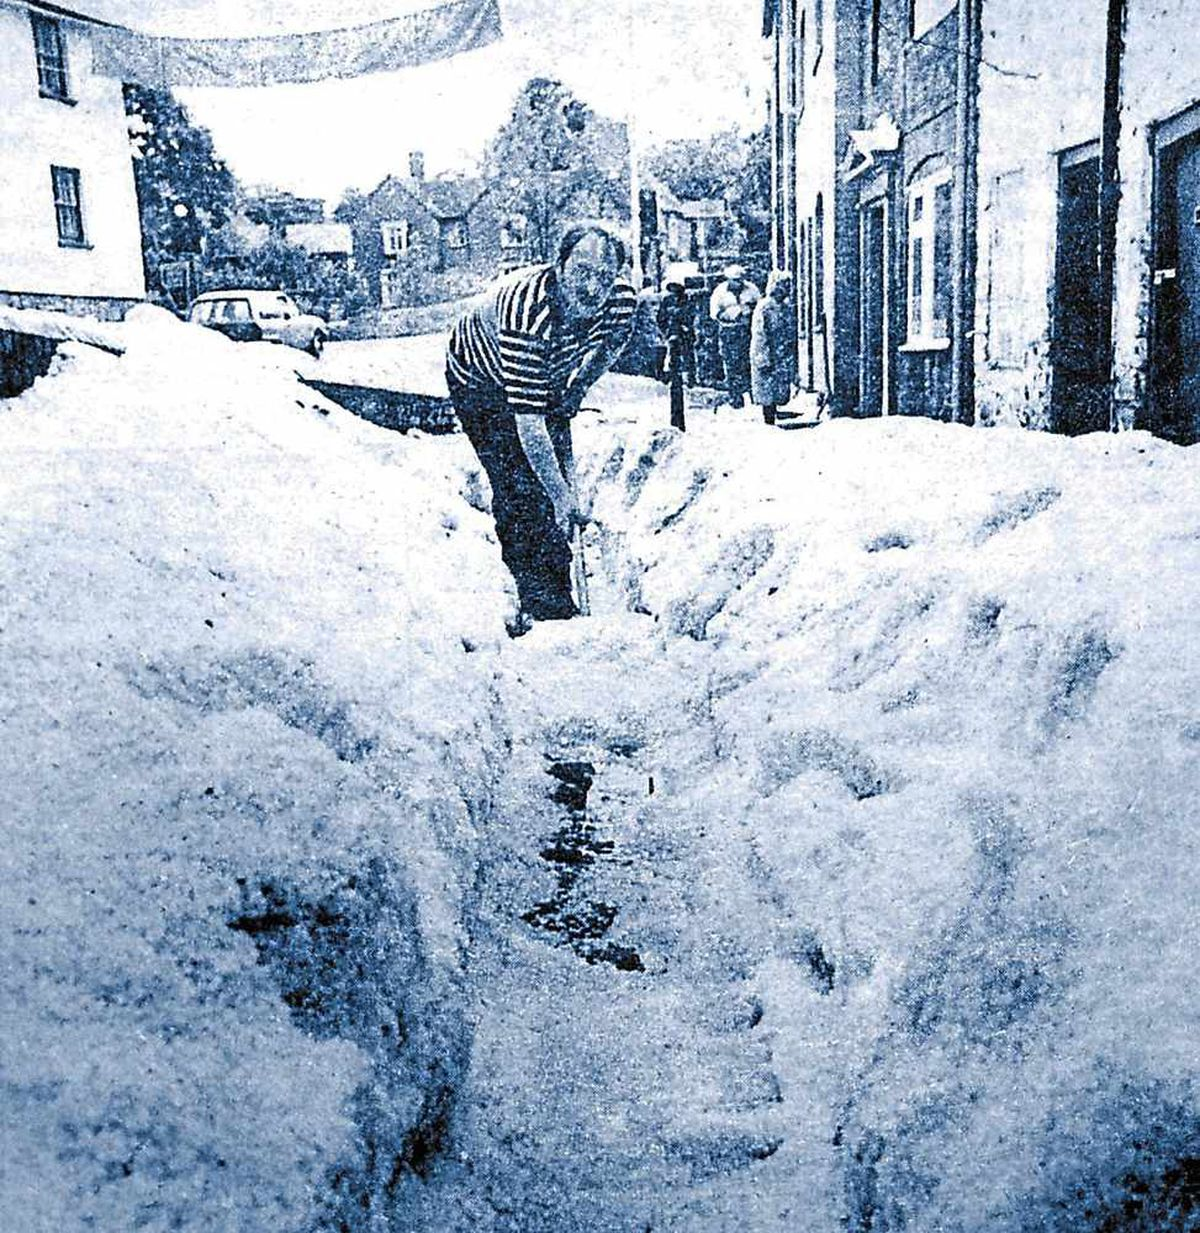 And finally . . . believe it or not this was Ludlow in JUNE 1982 after a freak hail storm – what a year for weather!